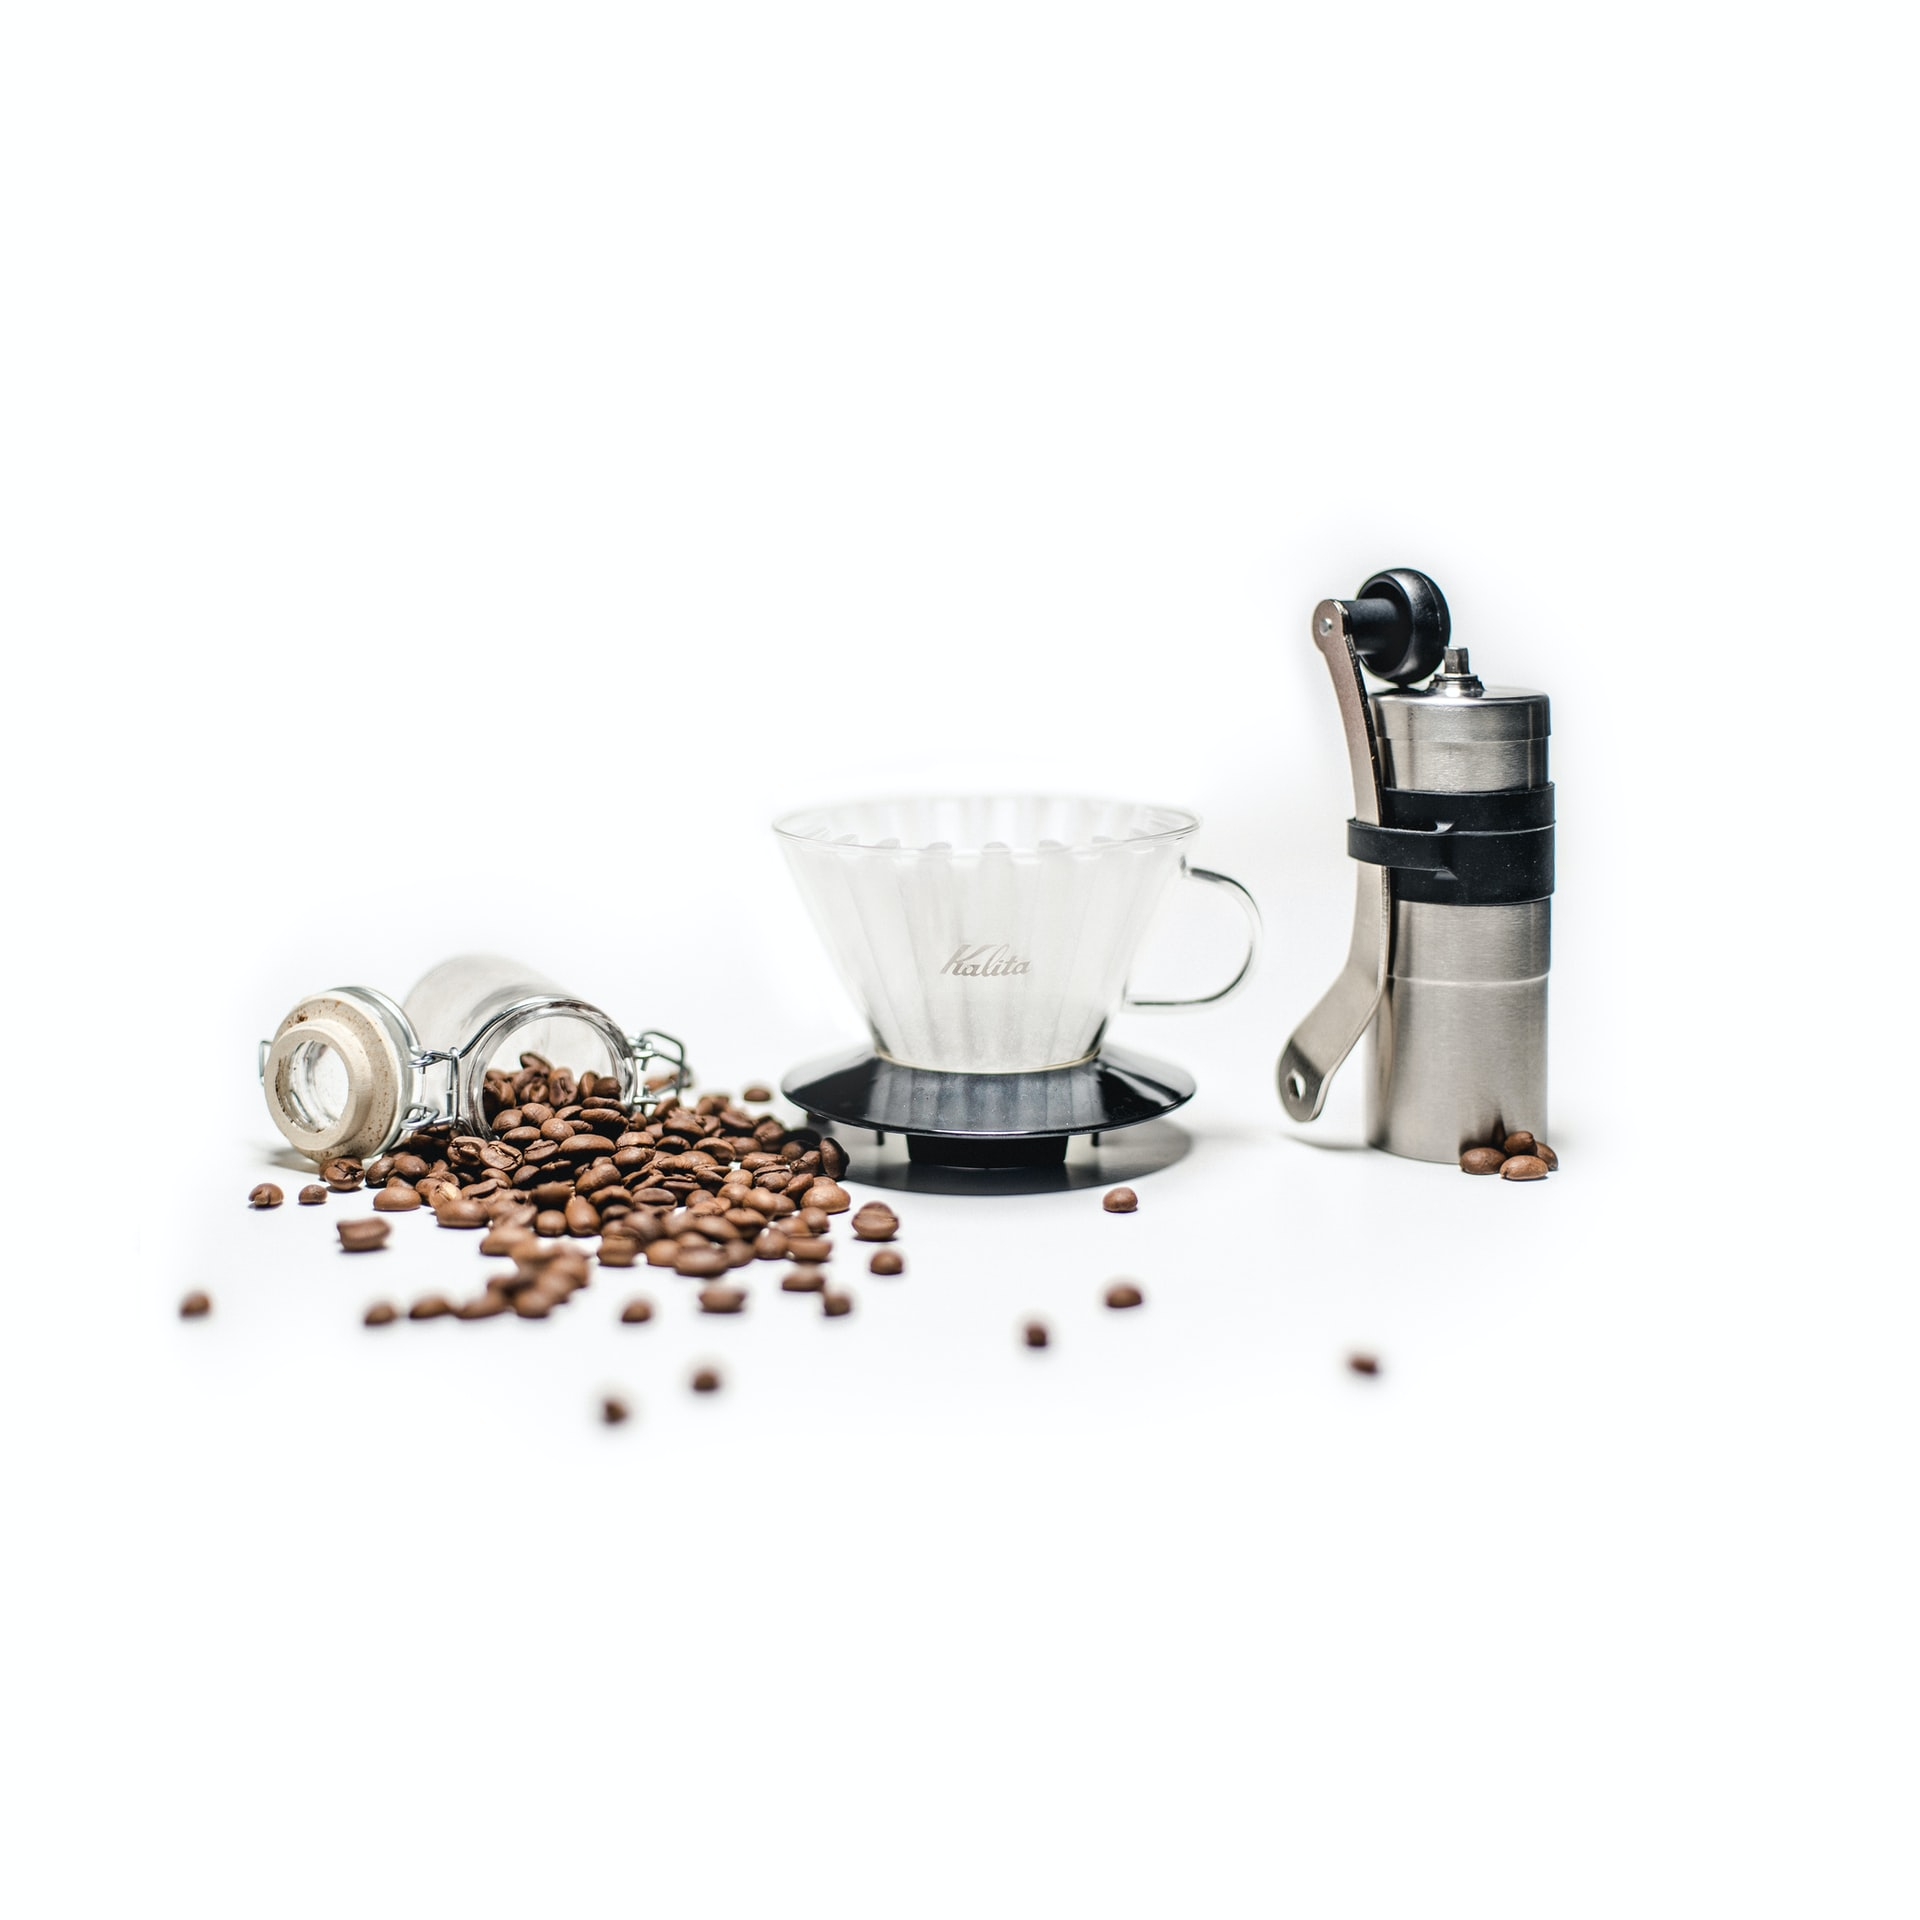 The Coffee Grinder – An Investment For Your Morning Ritual